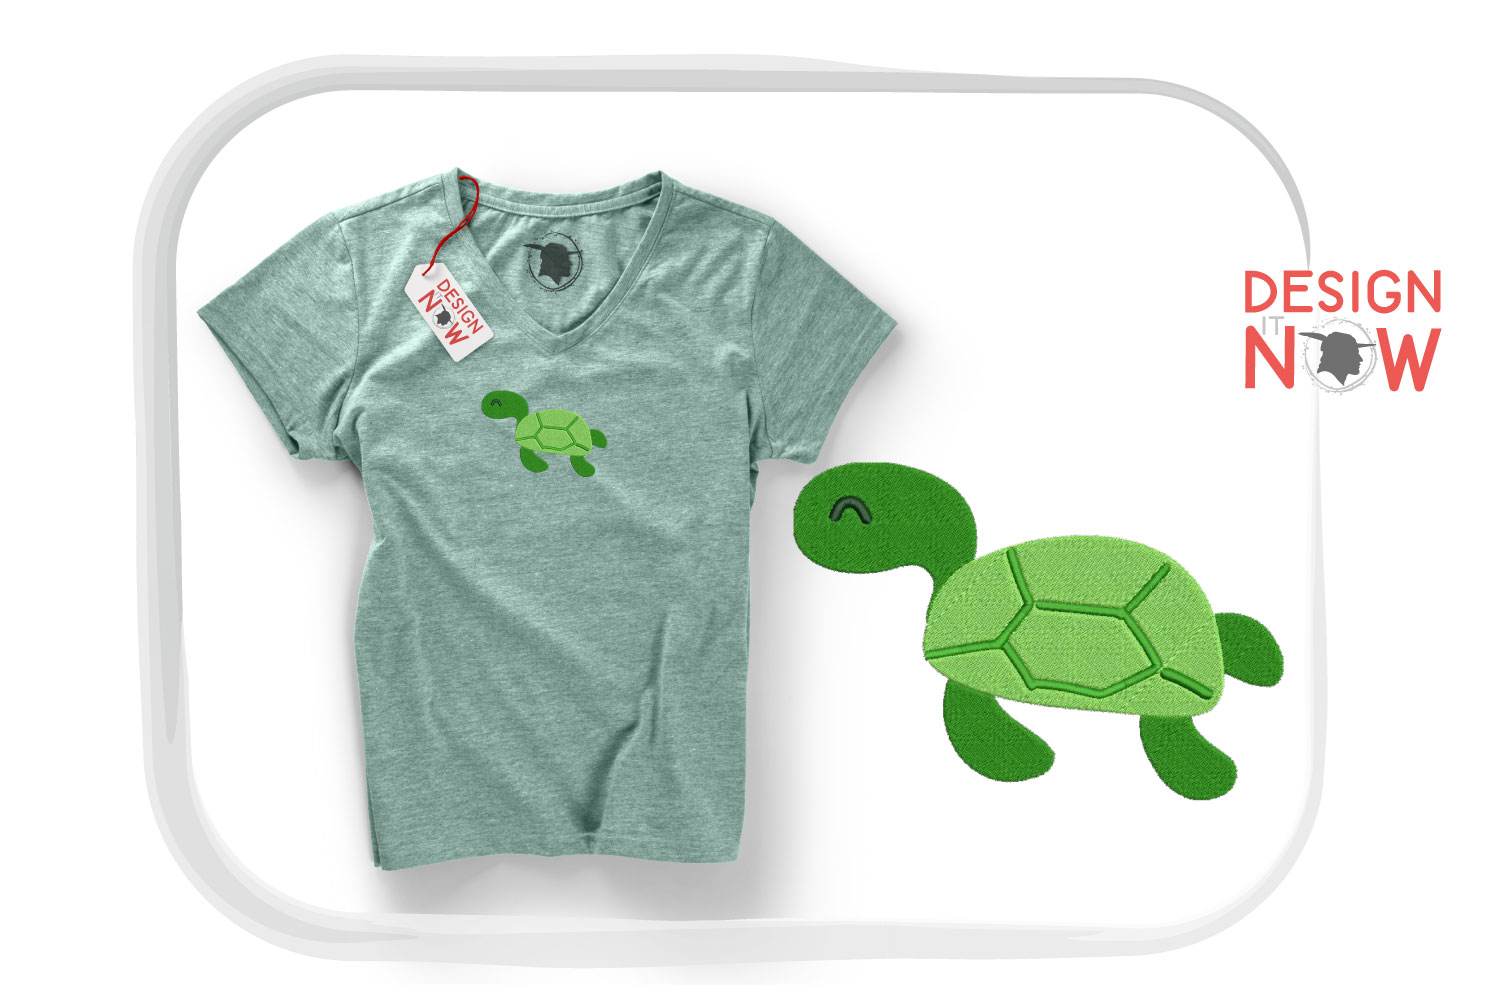 Turtle Embroidery Design, Turtle Embroidery Pattern, Sea example image 4